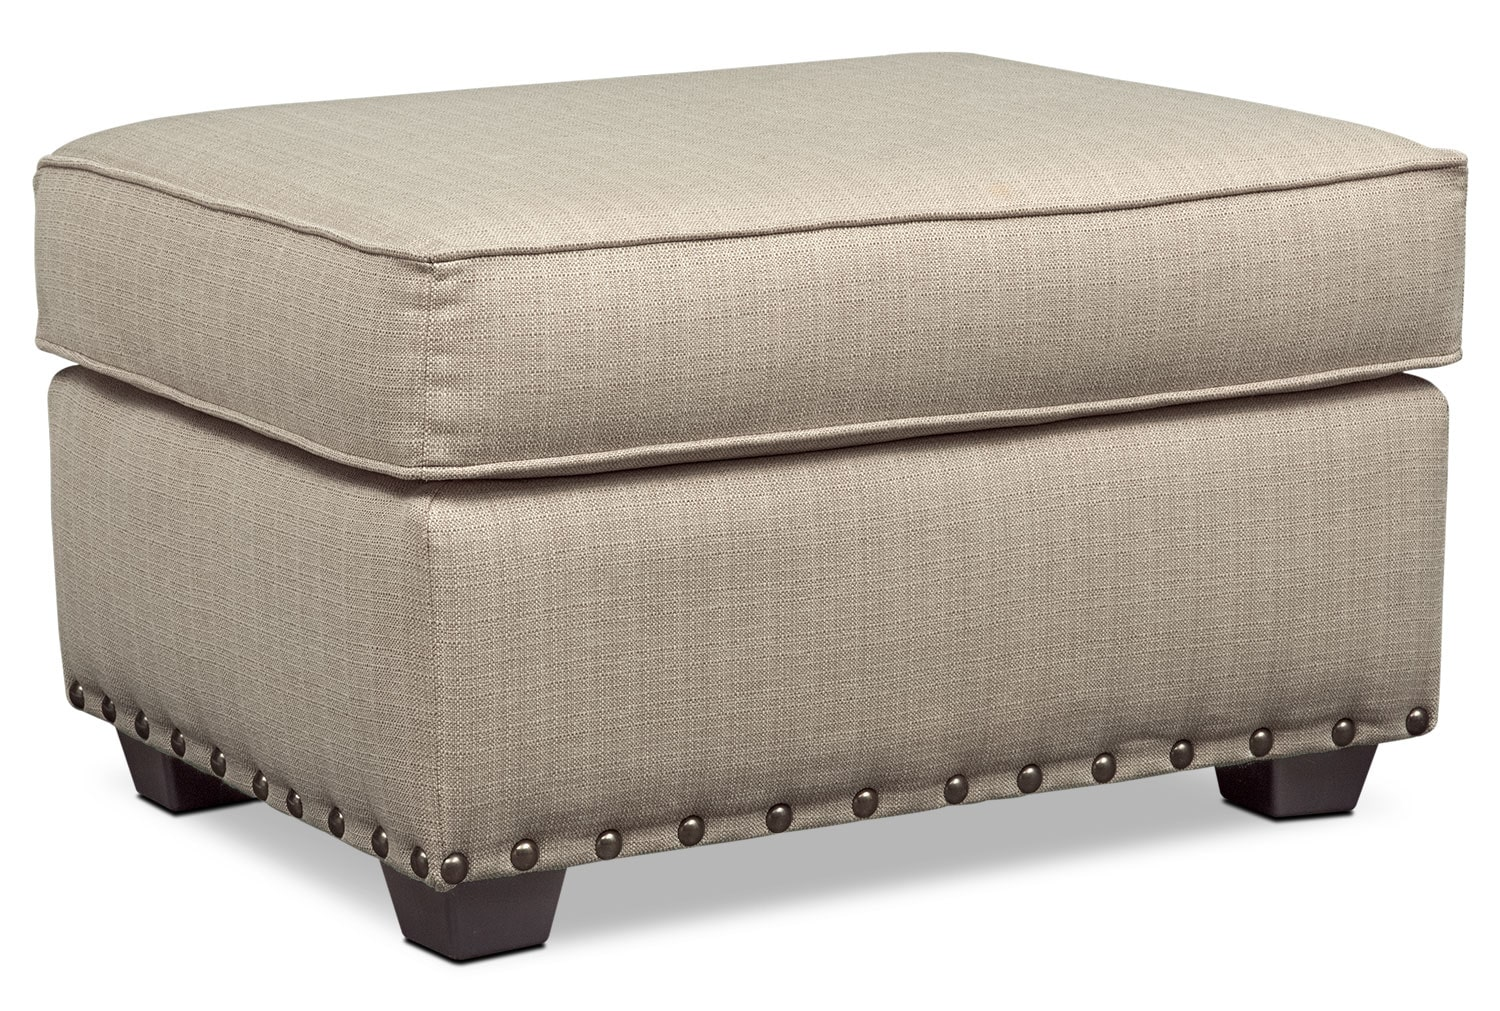 Living Room Furniture - Mckenna Ottoman